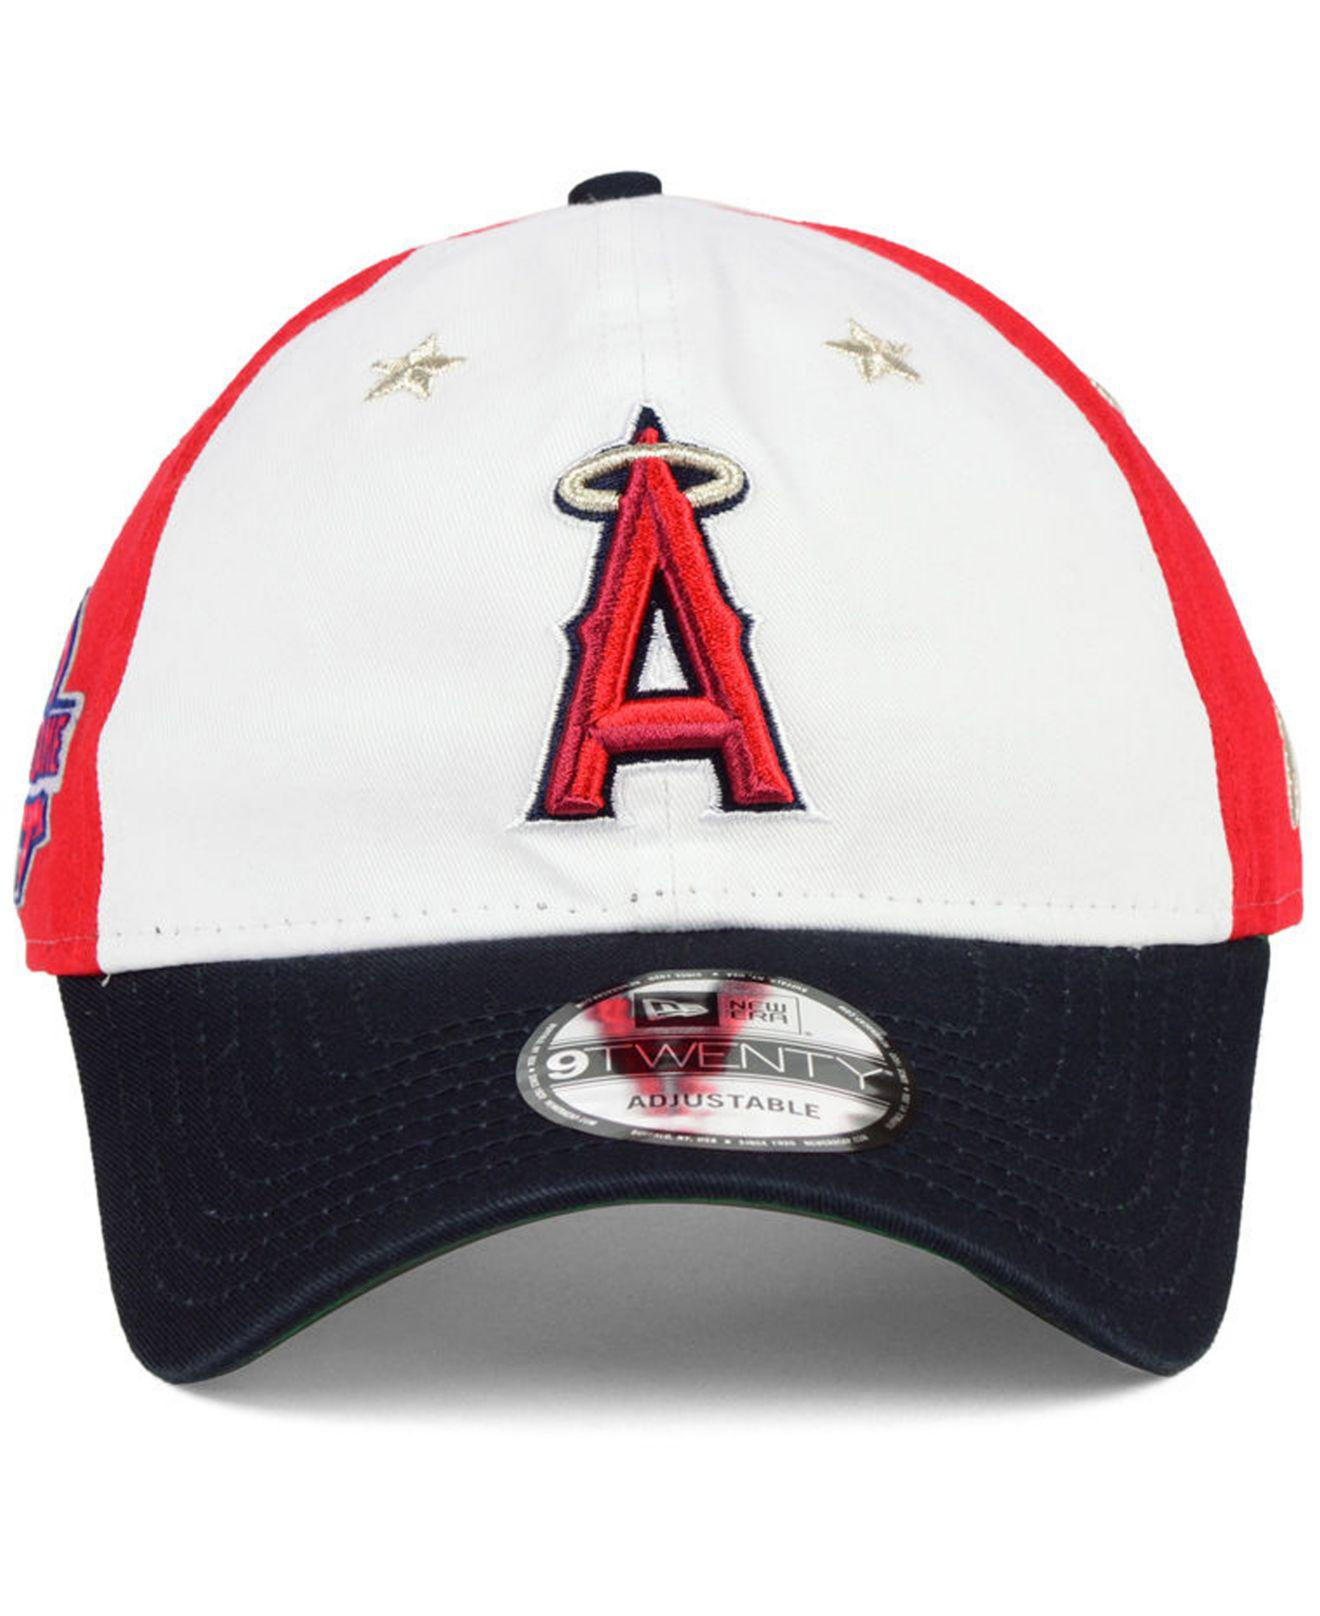 new product 055c1 145d5 ... best lyst ktz los angeles angels all star game 9twenty strapback cap  2018 in red for